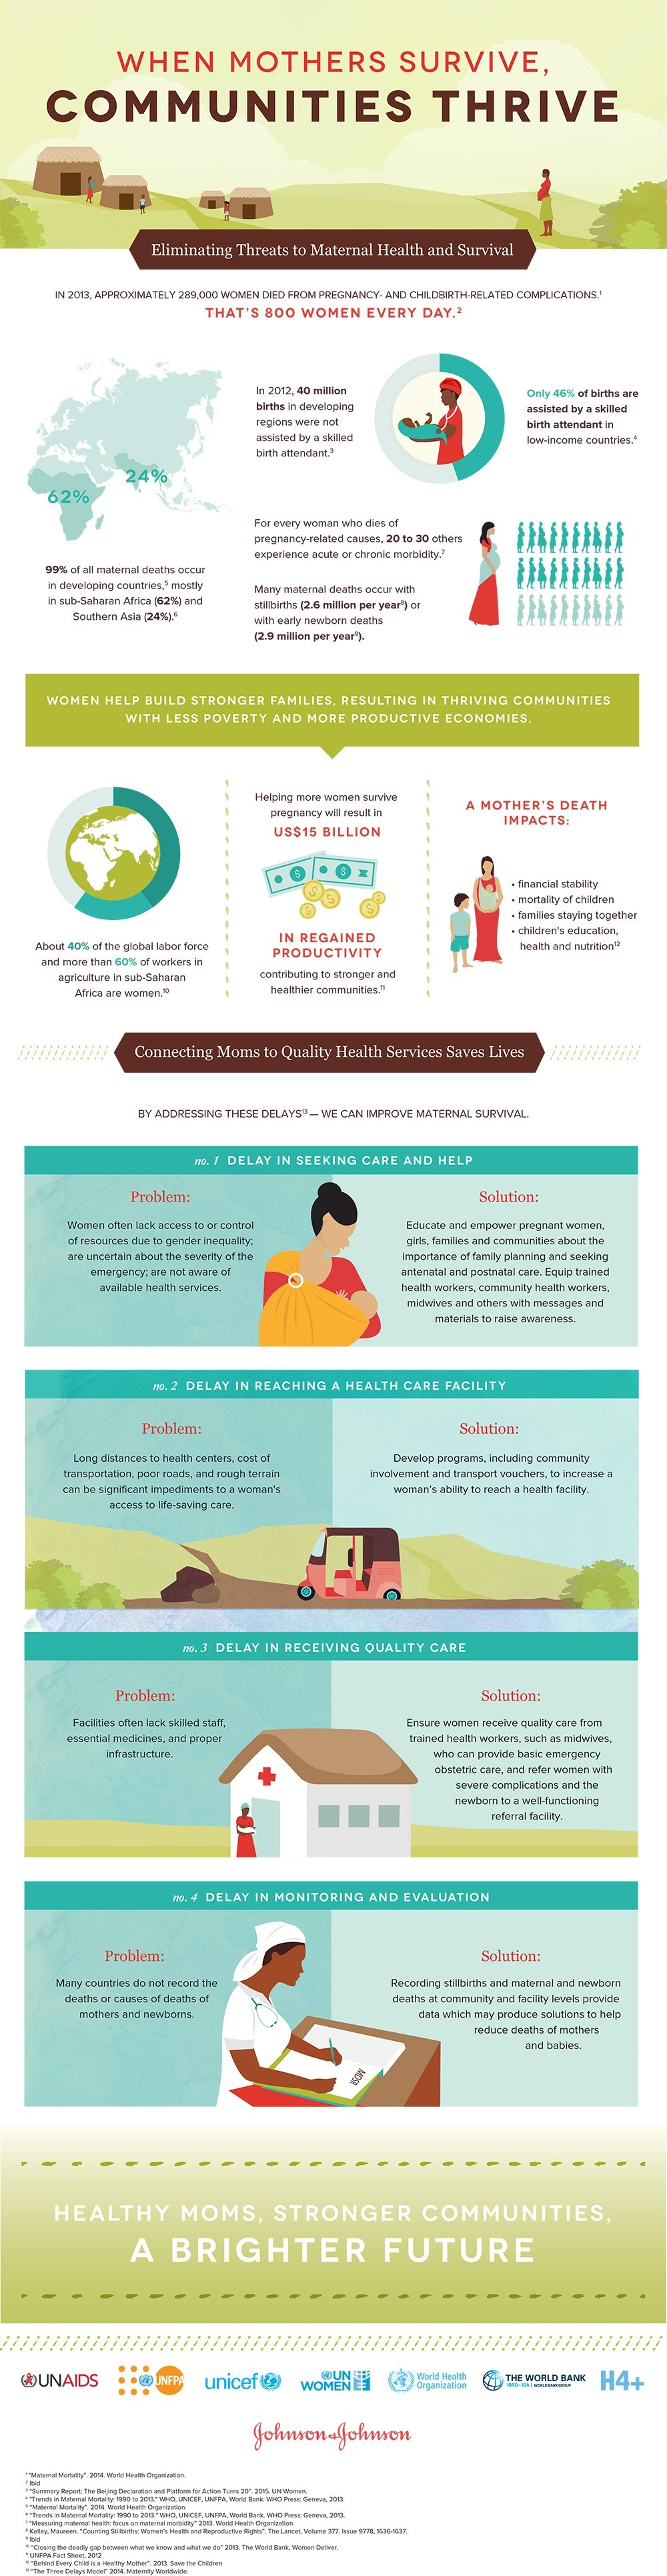 When Mothers Survive, Communities Thrive #infographic